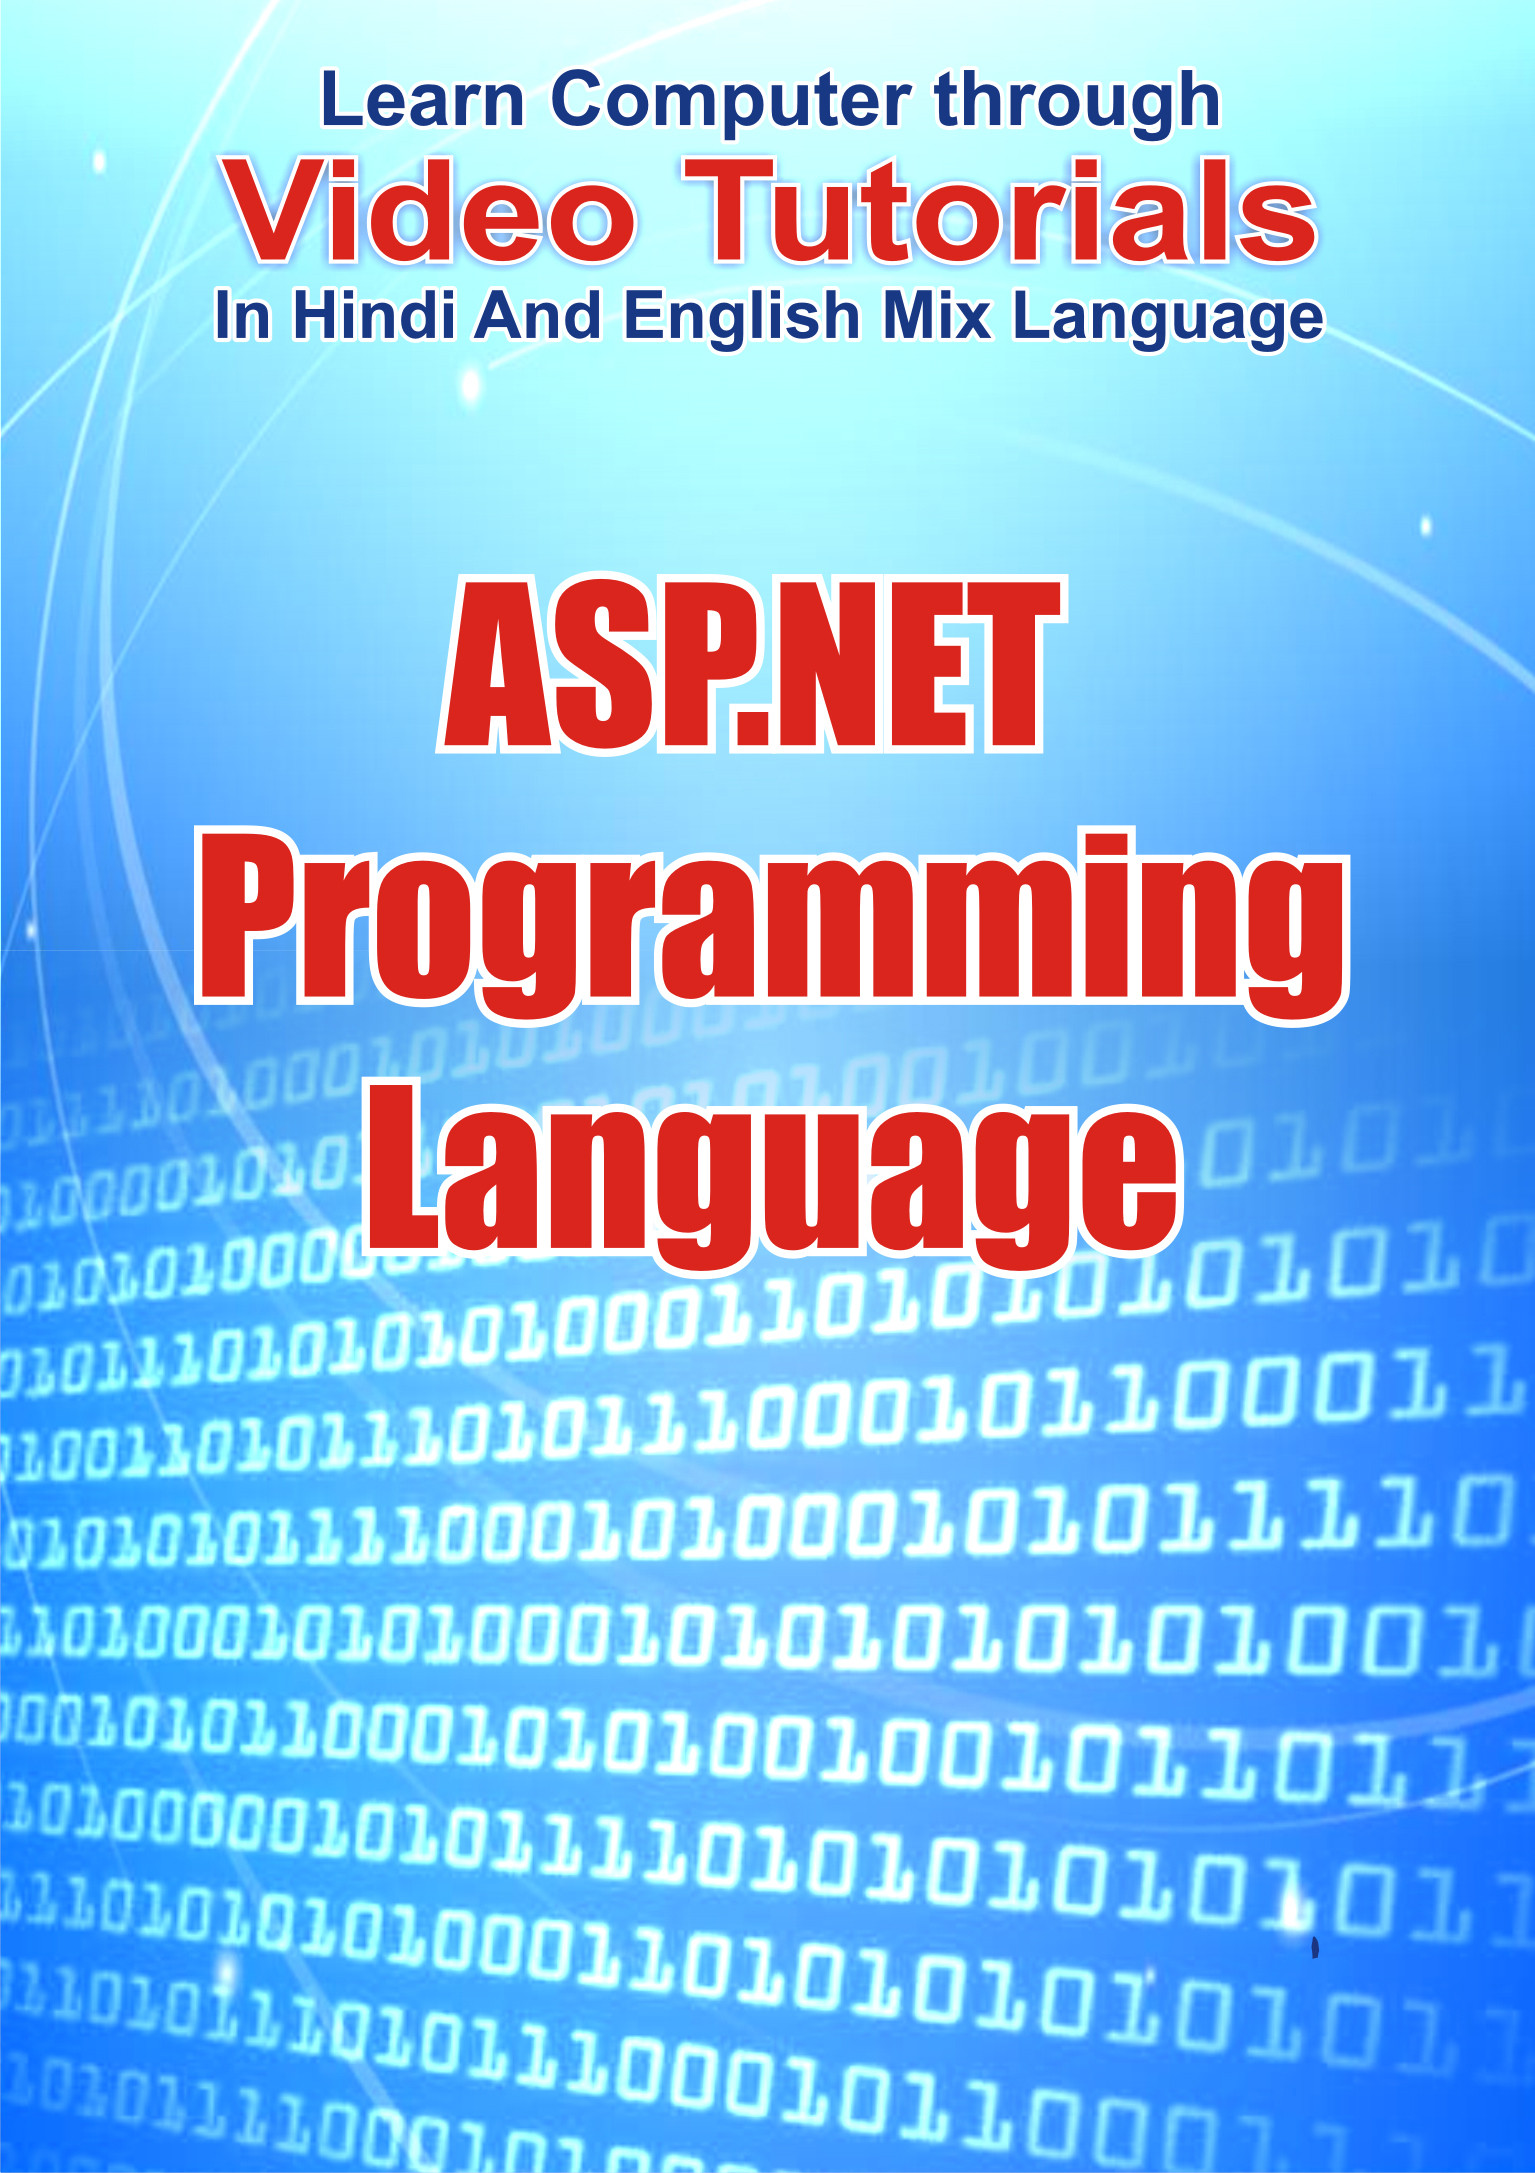 Lsoit Asp.NETProgramming Tutorials DVD(DVD)